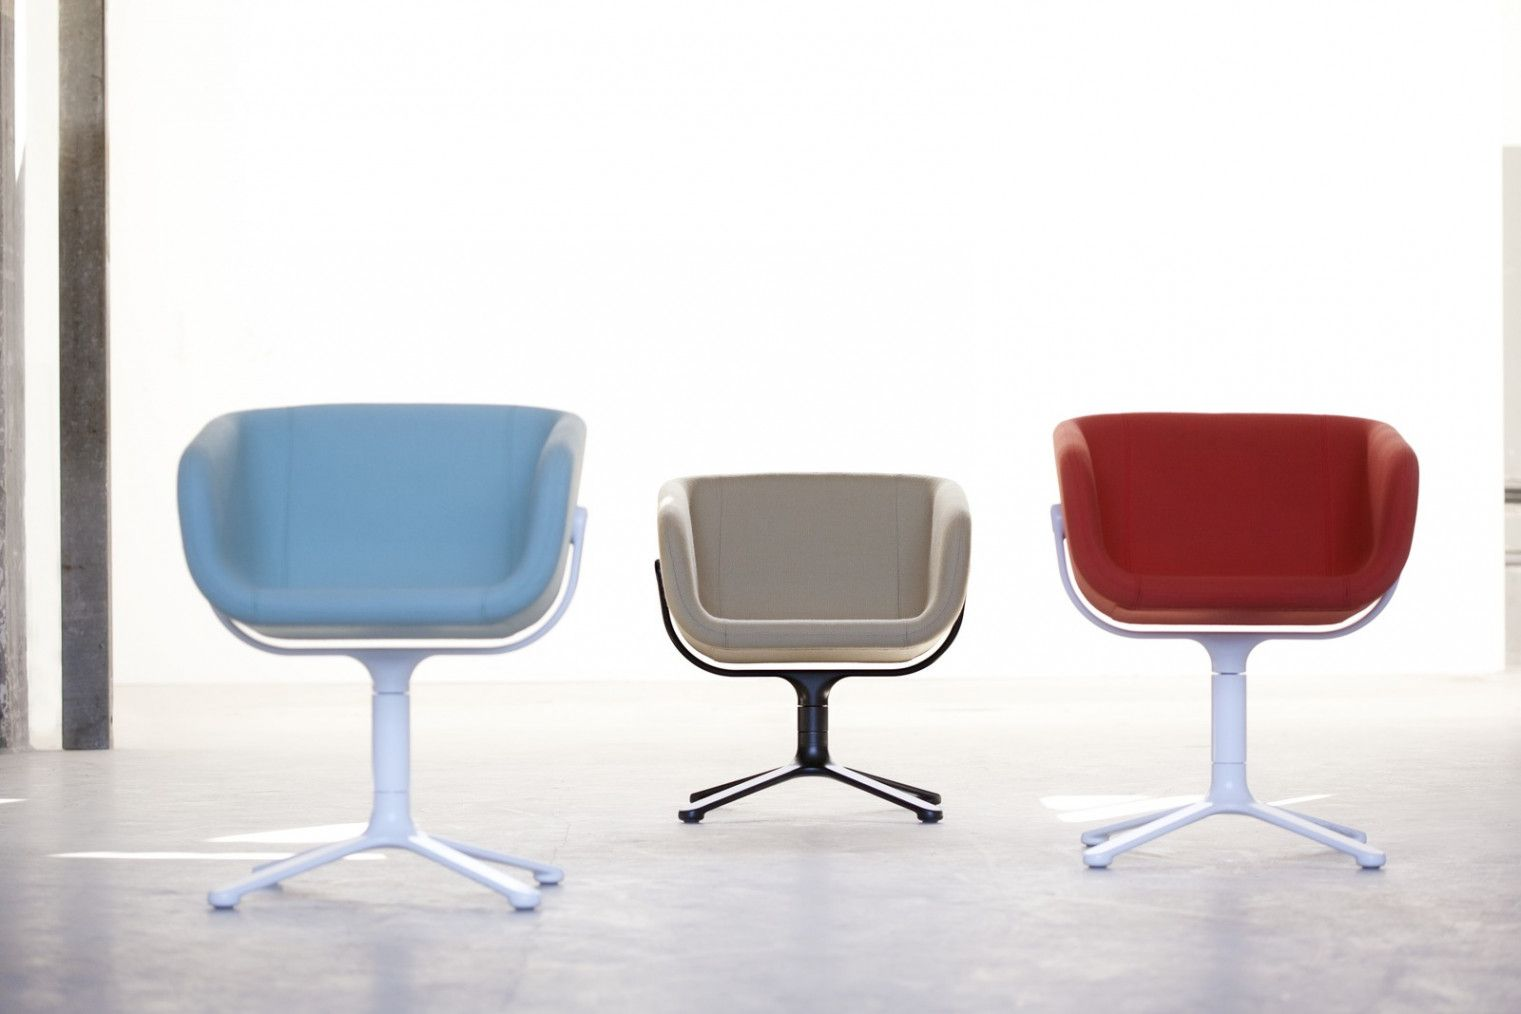 globe office chairs. 2018 Globe Office Chairs - Home Furniture Desk Check More At  Http://adidasjrcamp.com/globe-office-chairs/ Globe Office Chairs O